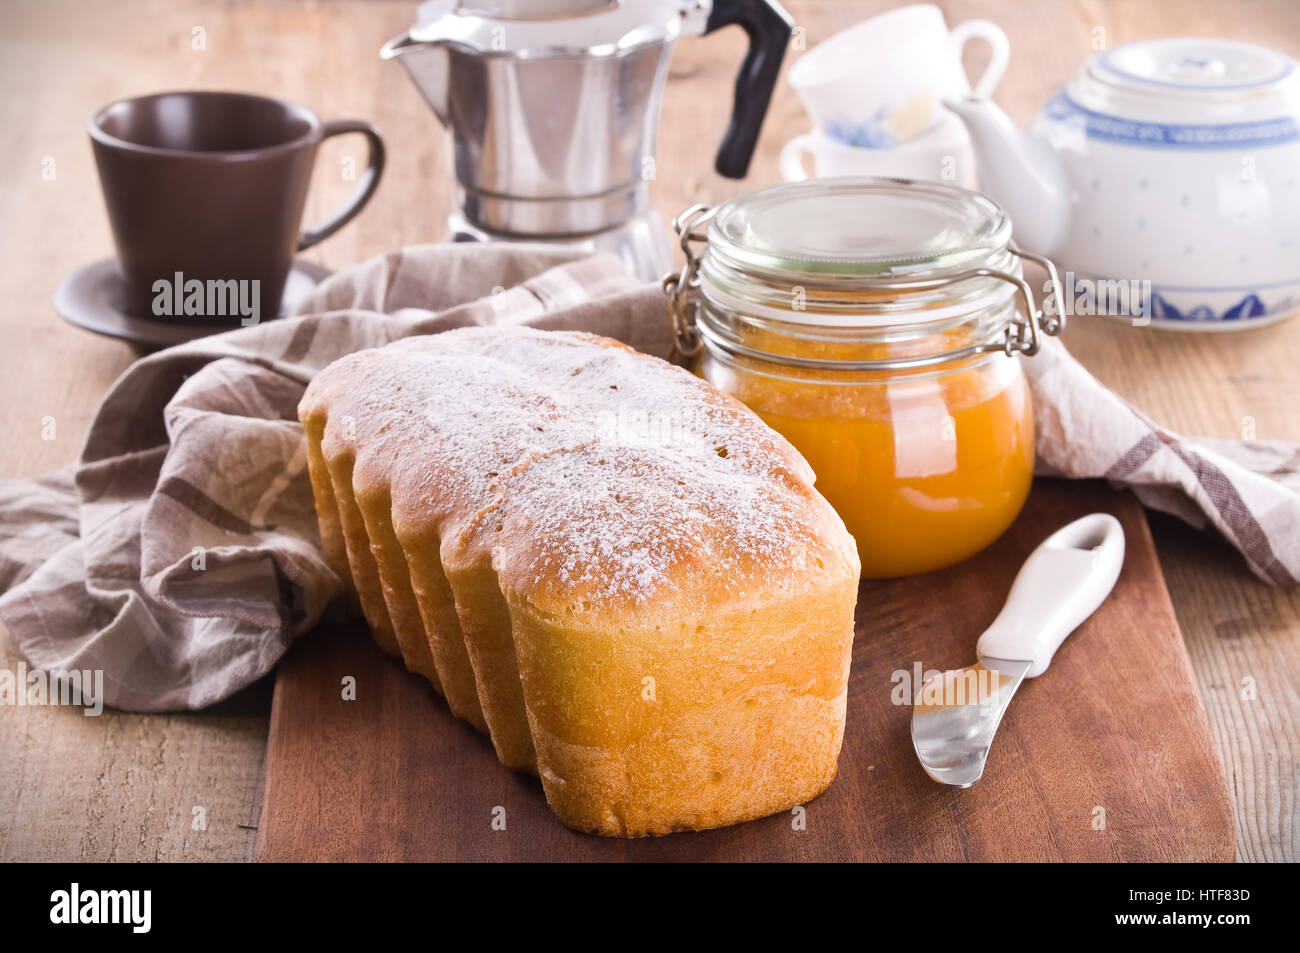 Sweet bread. - Stock Image